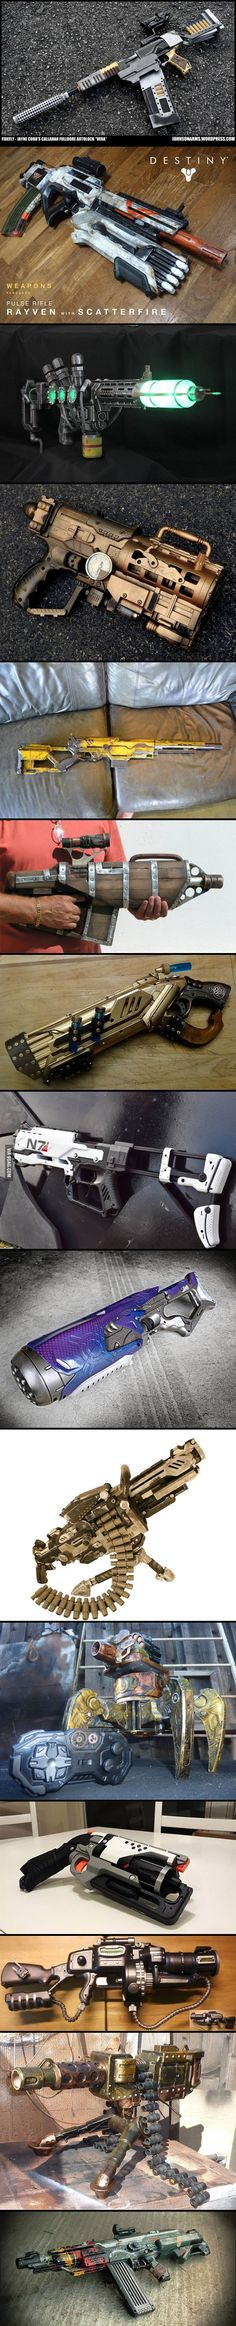 These Custom Nerf Guns Are Just Insane! (They may just be Nerf but hot dang! Arma Steampunk, Steampunk Weapons, Sci Fi Weapons, Concept Weapons, Weapons Guns, Fantasy Weapons, Steampunk Costume, Cosplay Weapons, Cosplay Diy